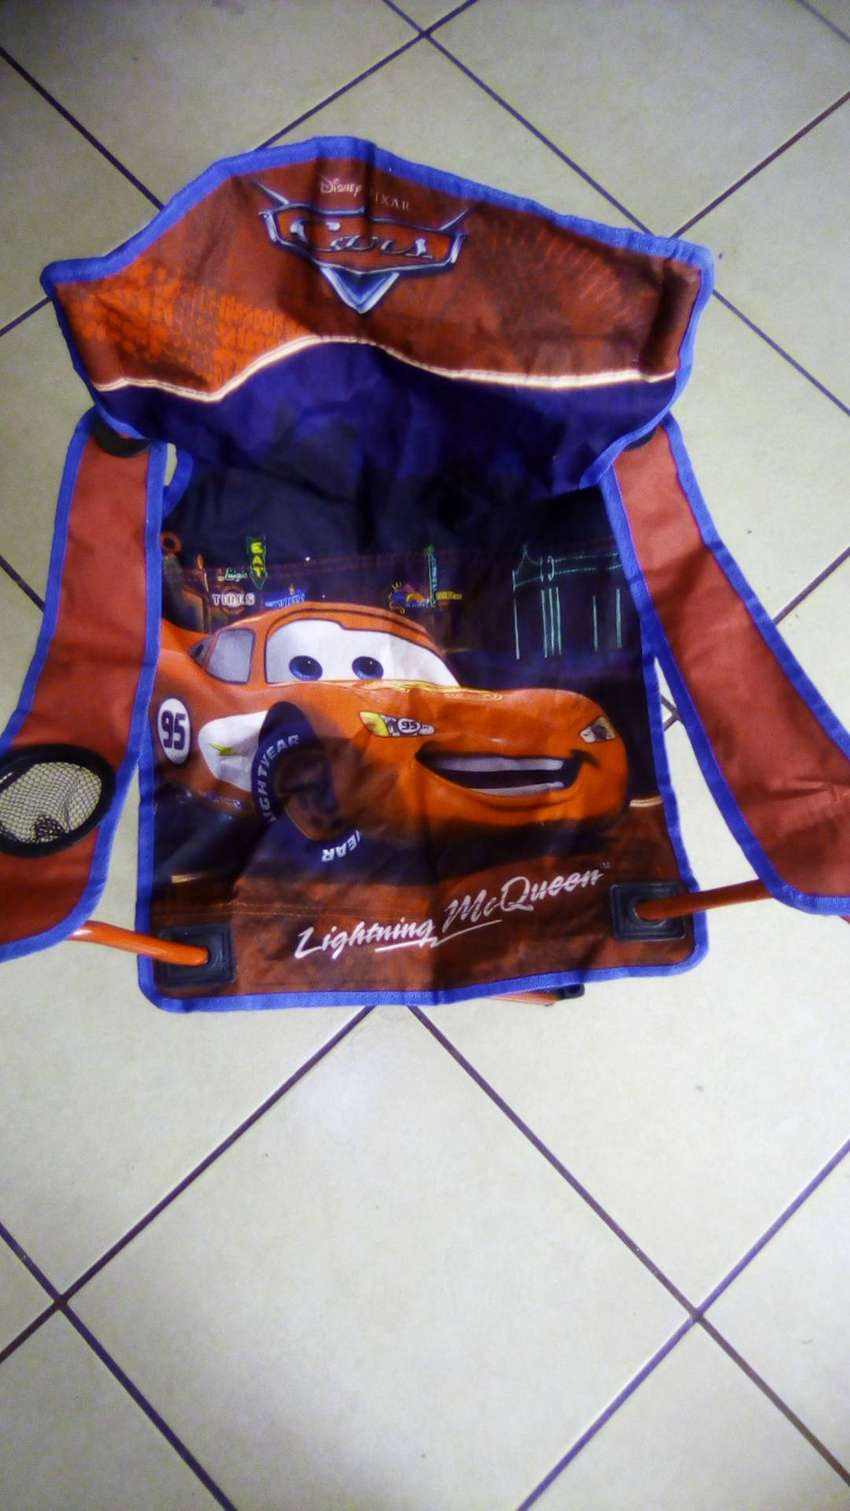 Kiddies Camp Chair for sale